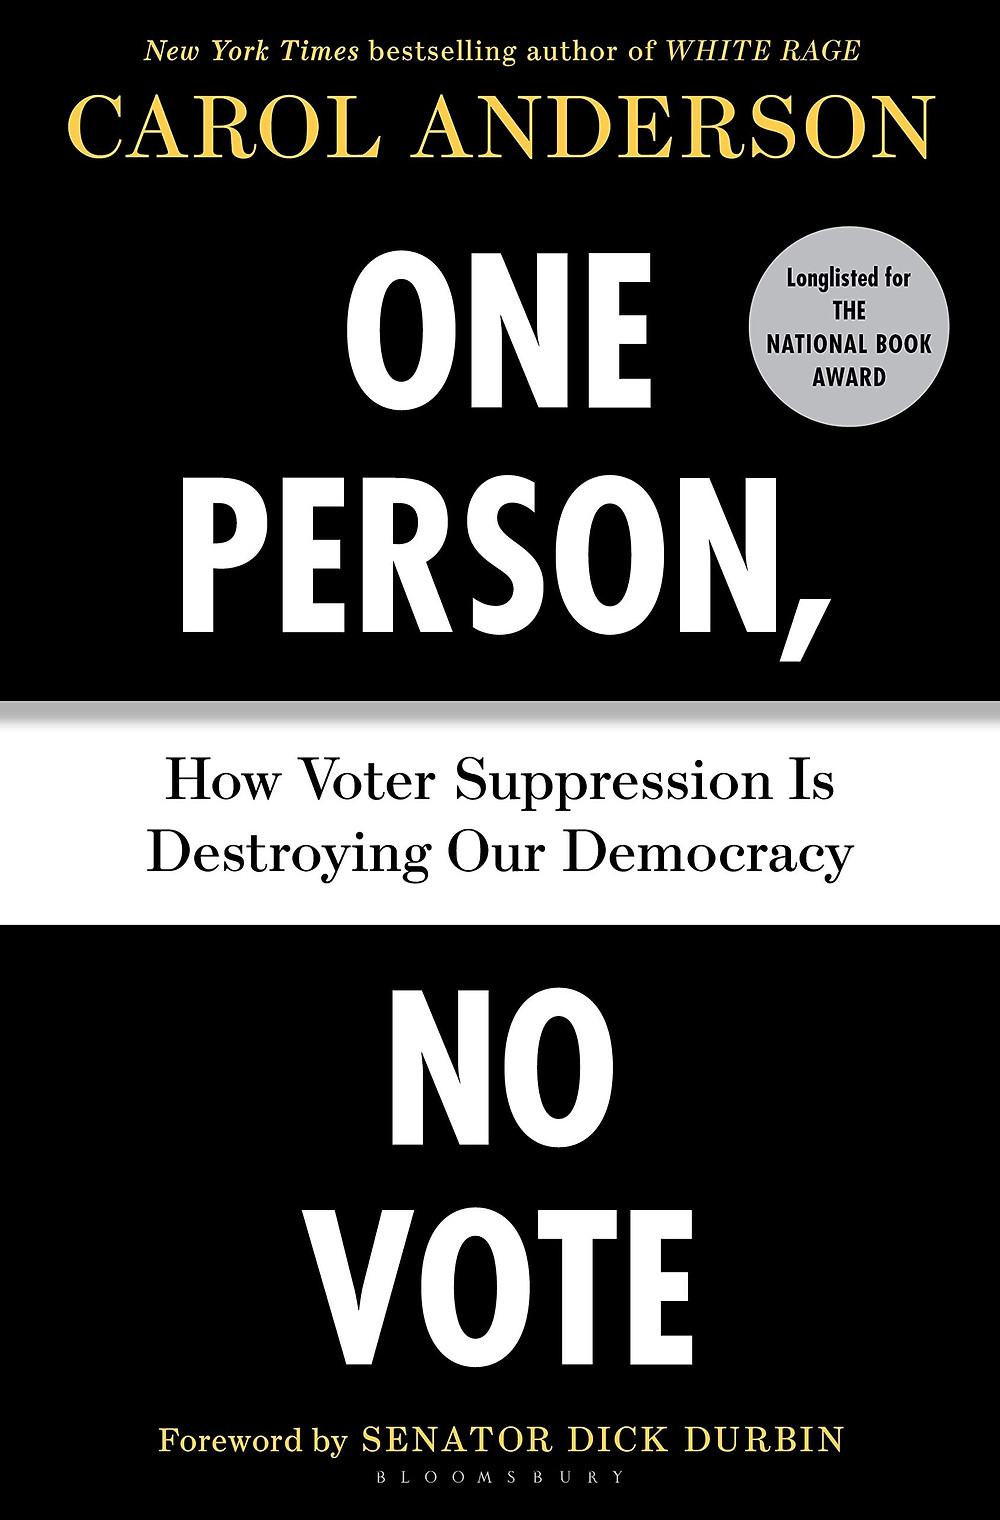 One Person, No Vote: How Voter Suppression Is Destroying Our Democracy by Carol Anderson : the book slut book reviews